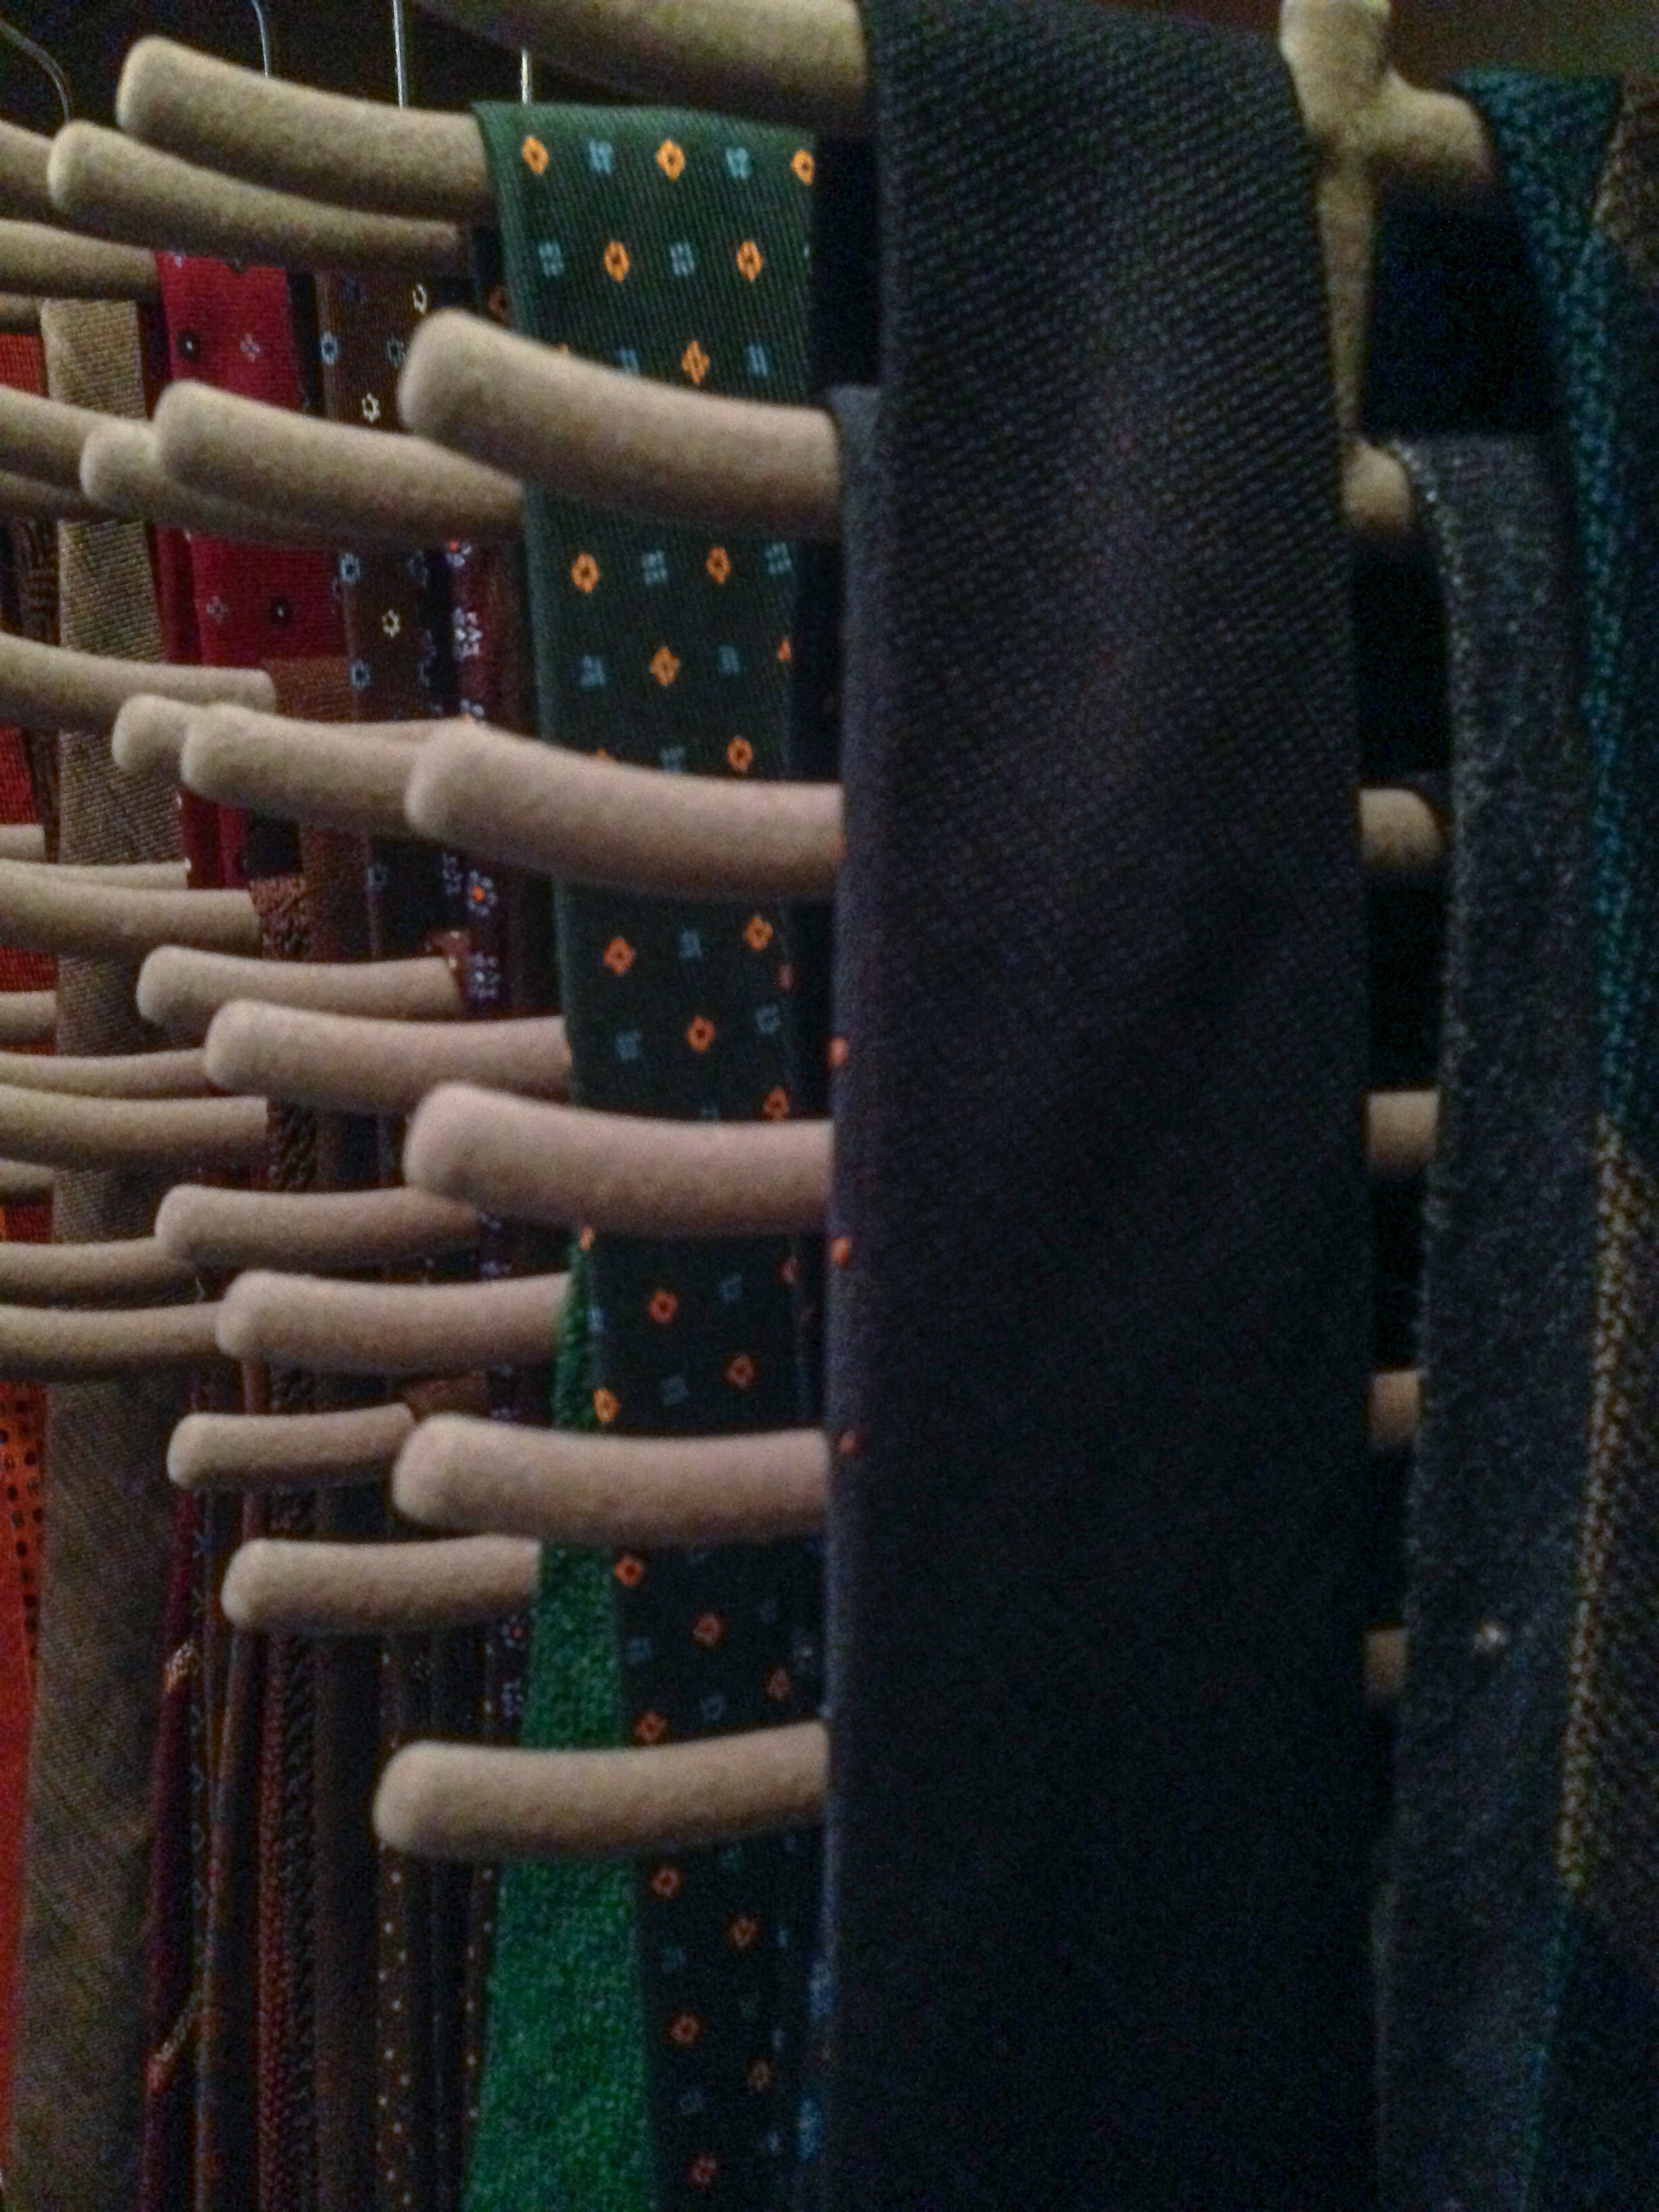 Claghorn's photos in How to store ties